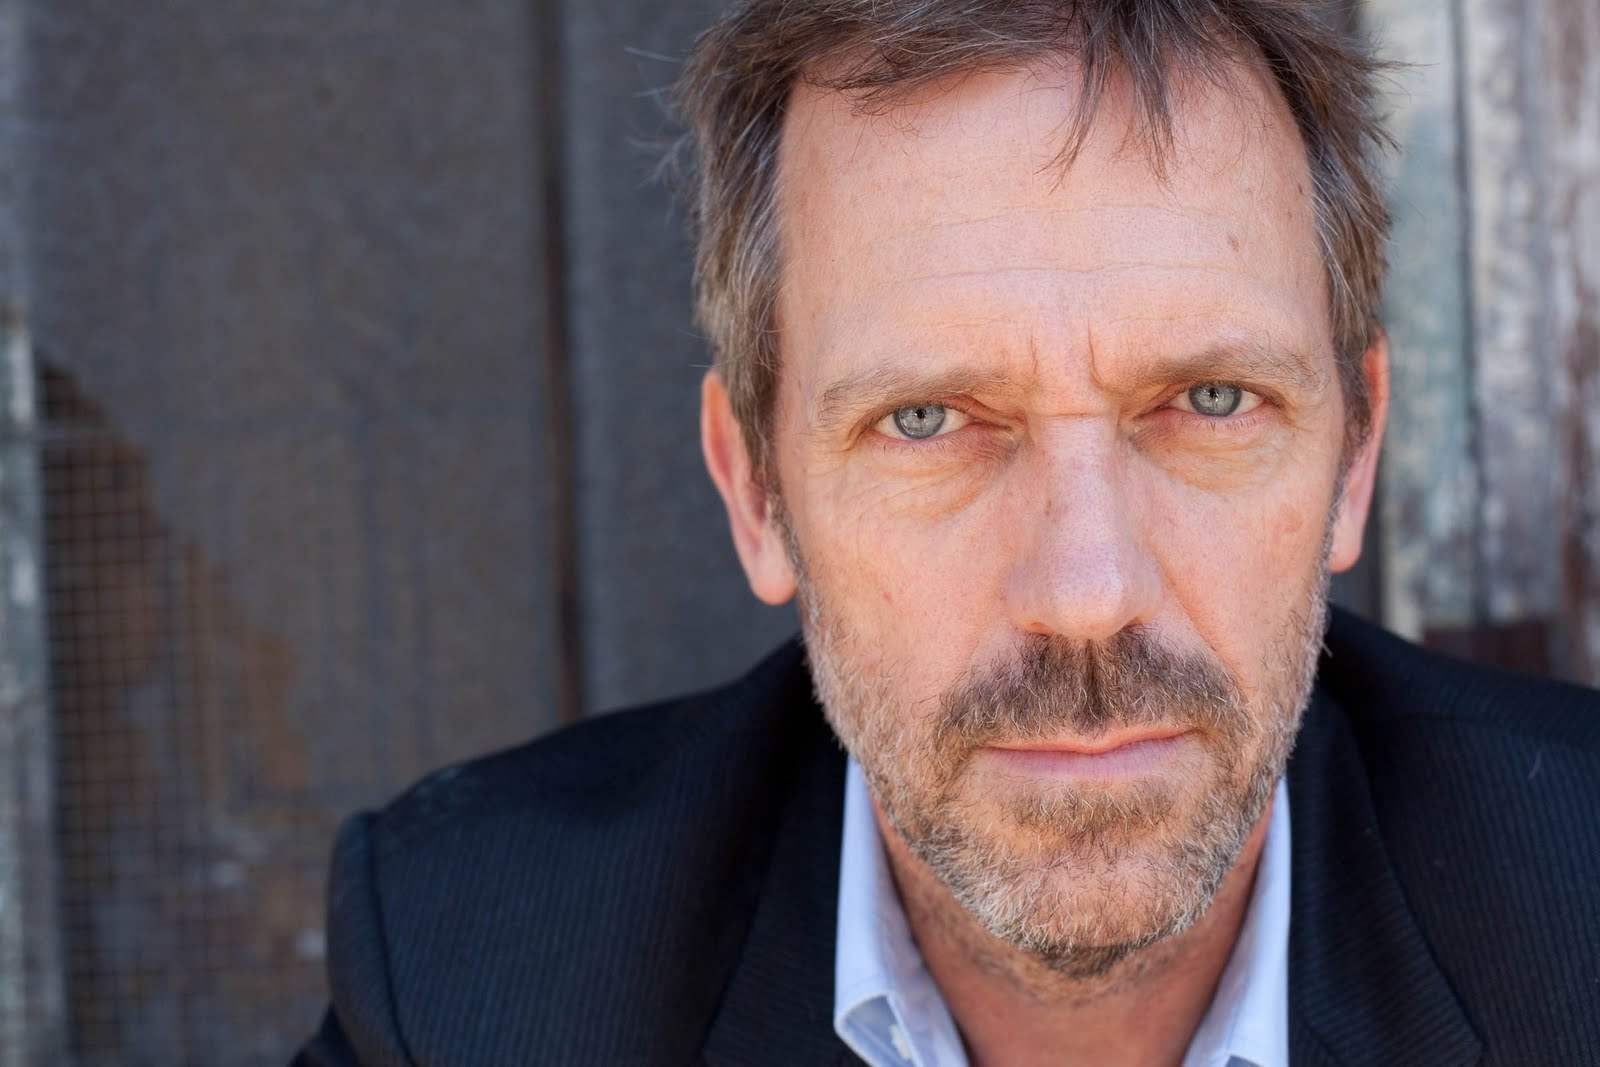 Hugh-Laurie-Photoshoot-Let-Them-Talk-large-version-hugh-laurie-22079904-1600-1067